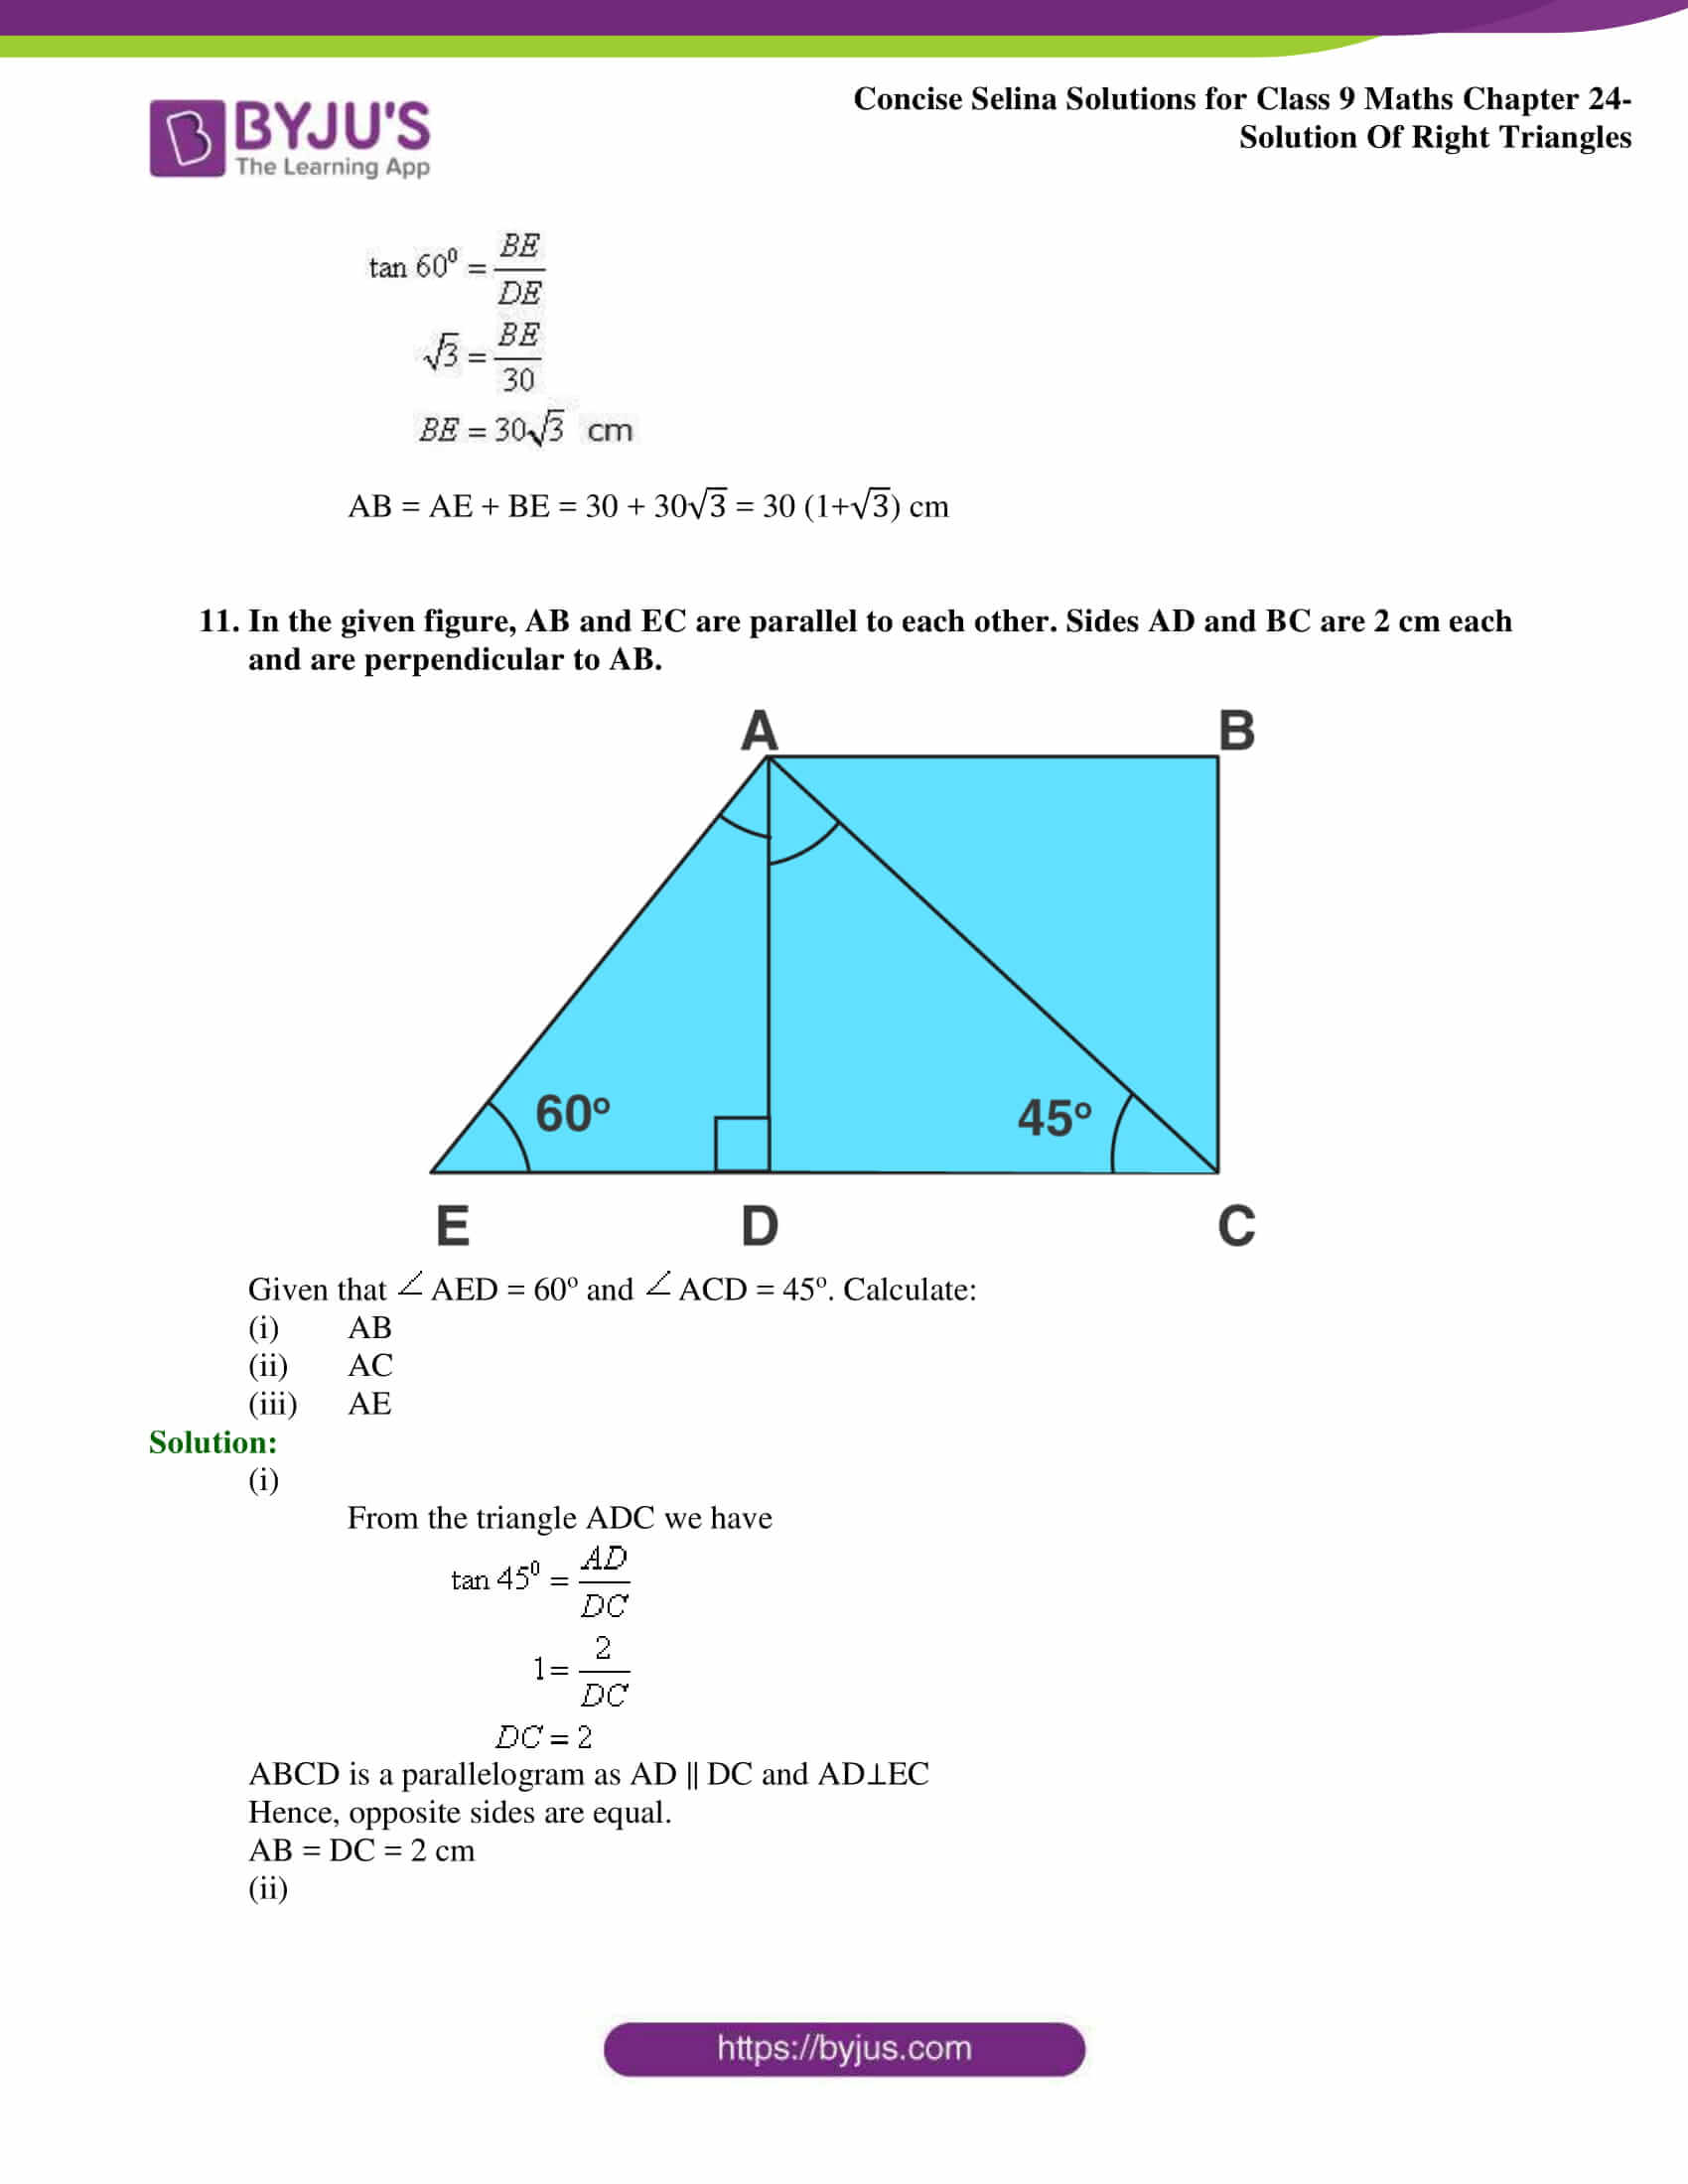 Concise Selina Solutions Class 9 Maths Chapter 24 Solution Of Right Triangles part 12